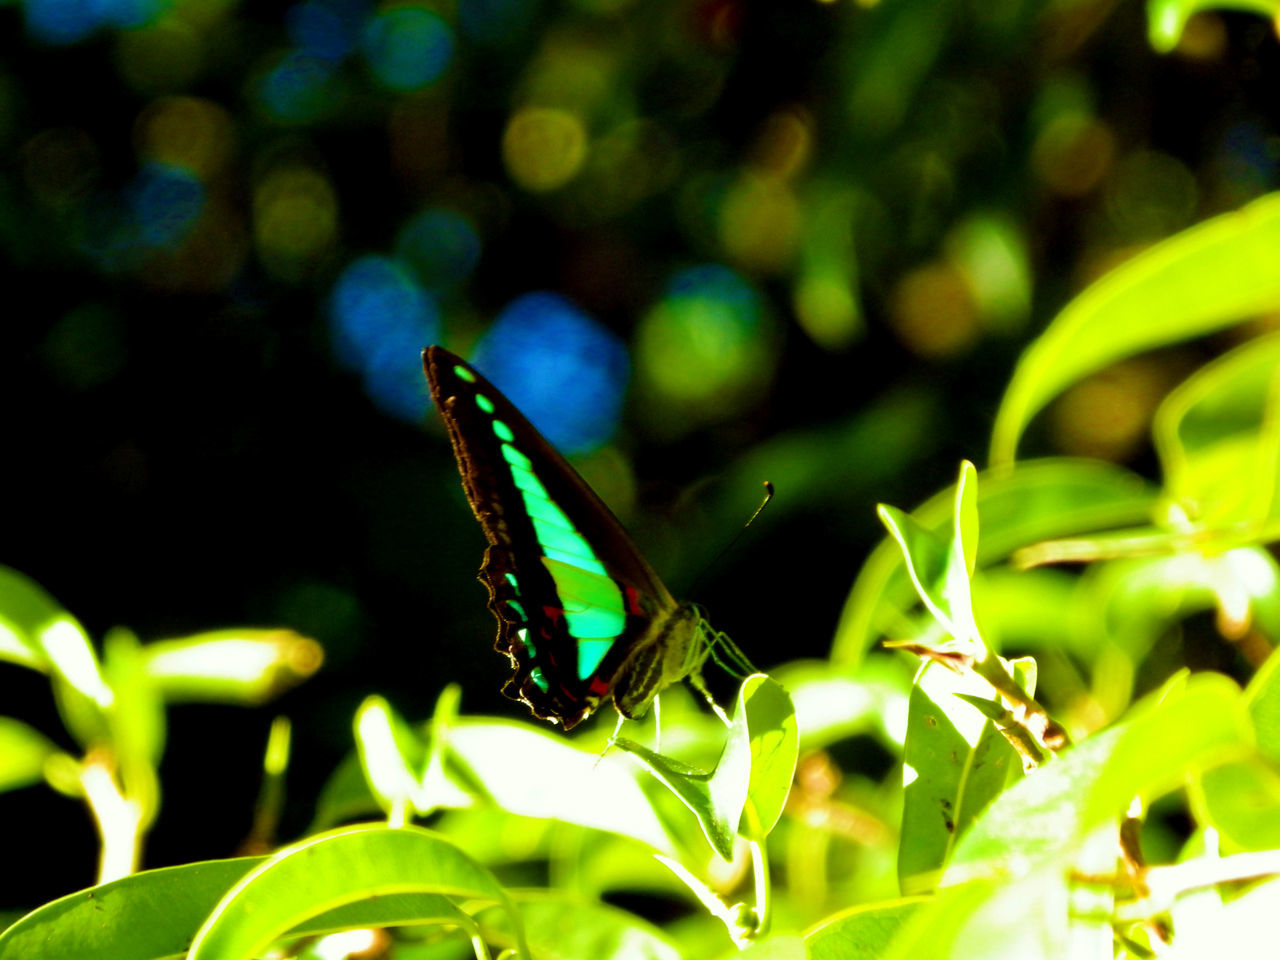 one animal, insect, animals in the wild, animal themes, green color, butterfly - insect, leaf, animal wildlife, growth, nature, outdoors, no people, close-up, plant, butterfly, day, beauty in nature, fragility, freshness